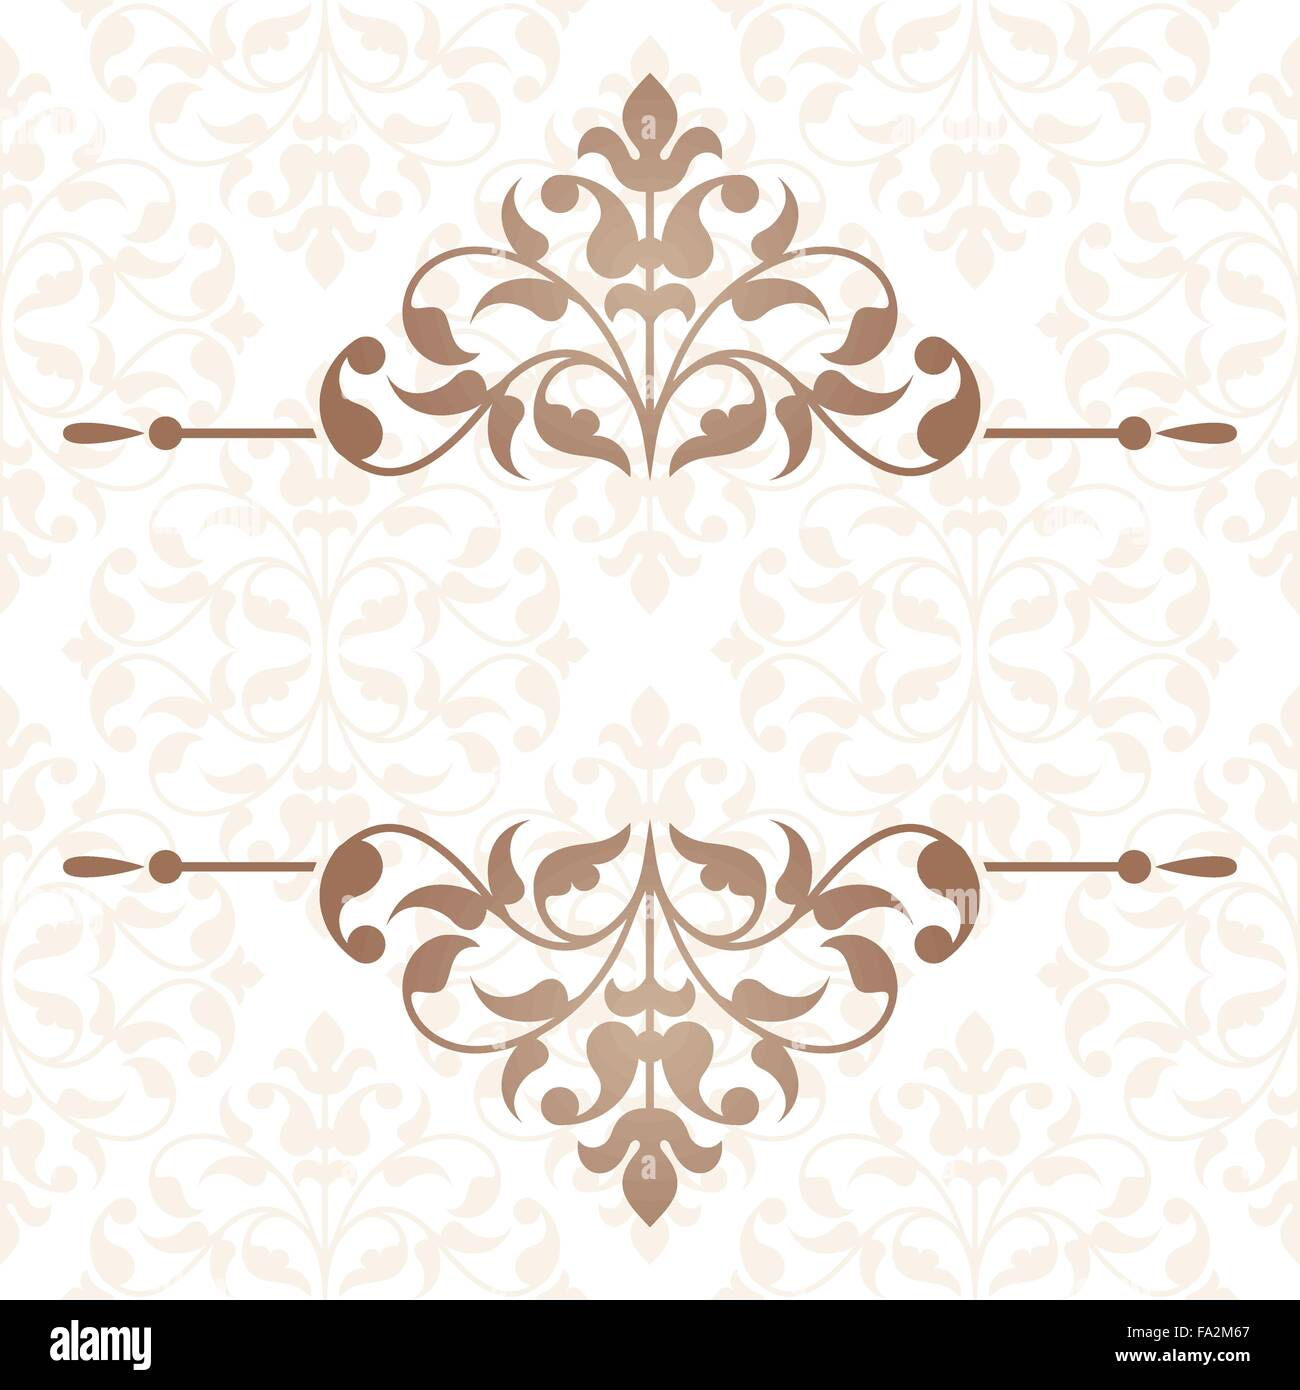 Arabic invitation card stock vector art illustration vector image arabic invitation card stopboris Images